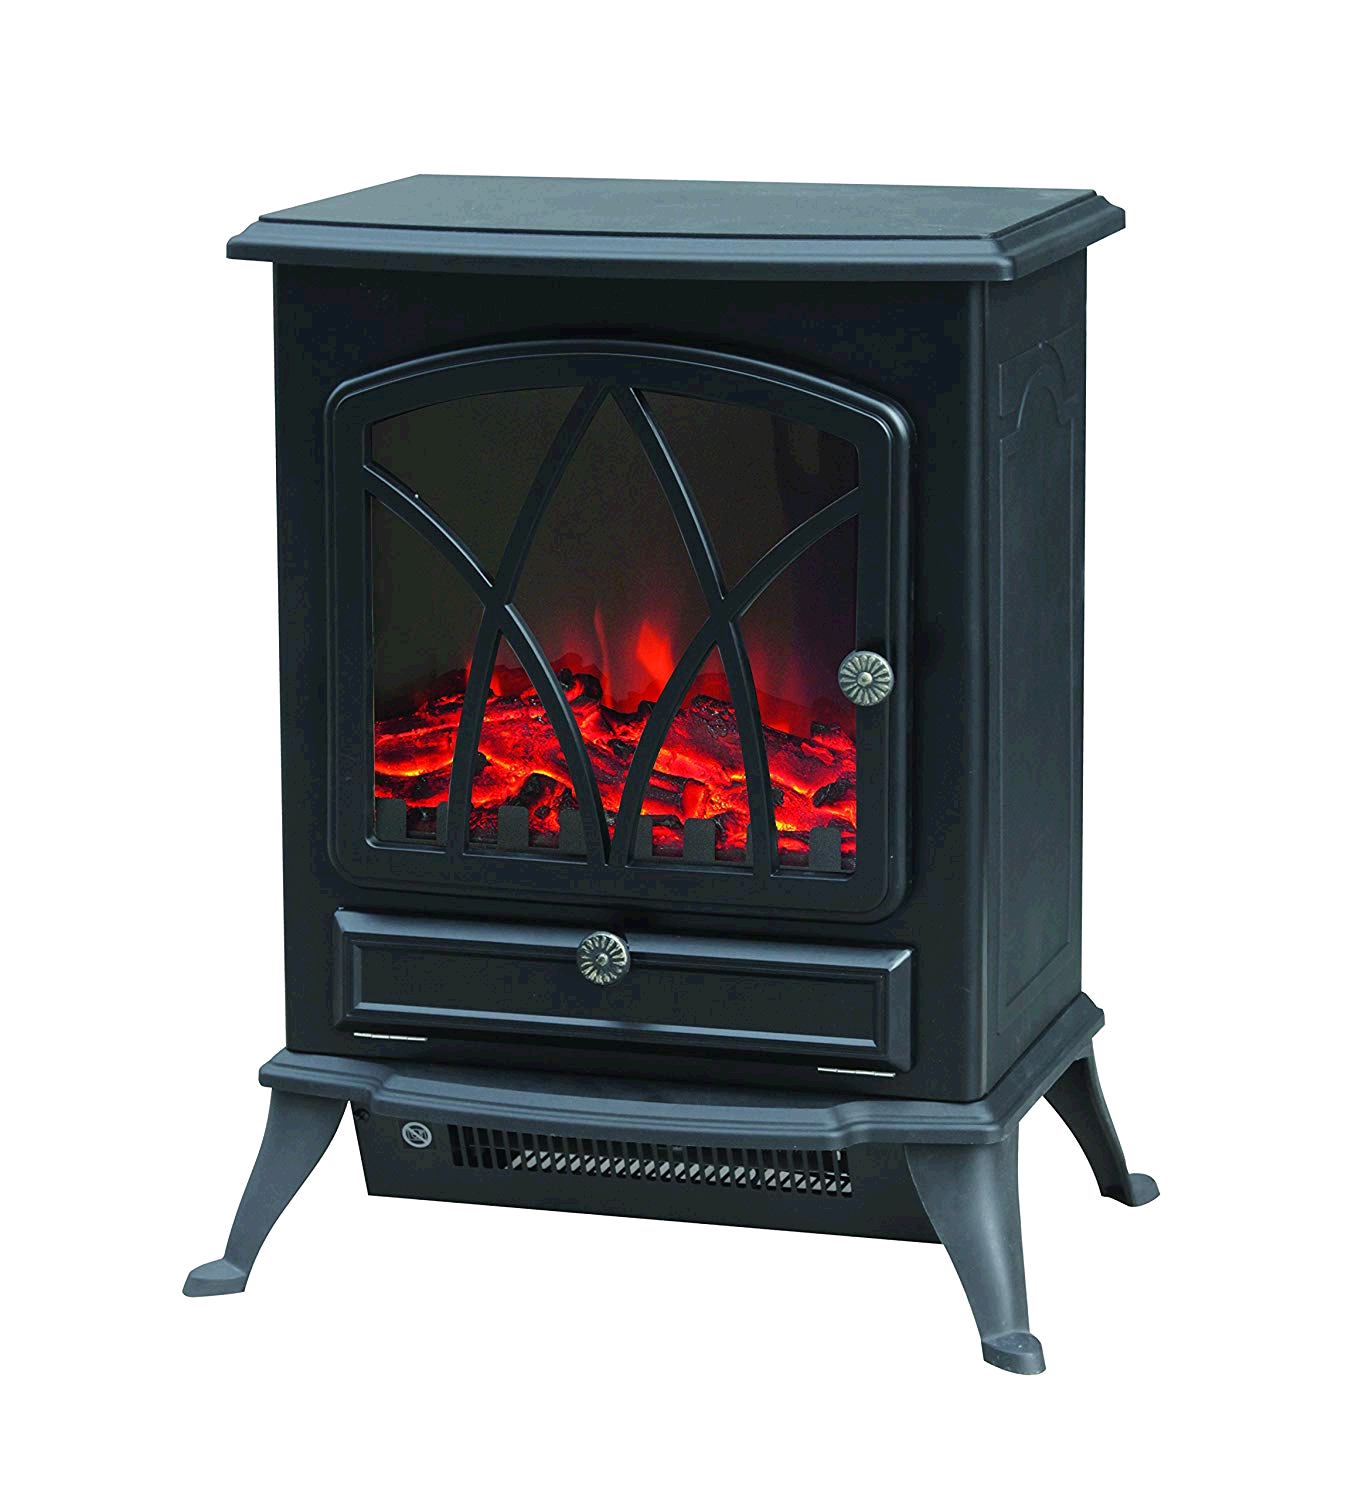 Warmlite WL46018 Electric Fire Stove with Realistic LED Log Flame, 2000 W - Black